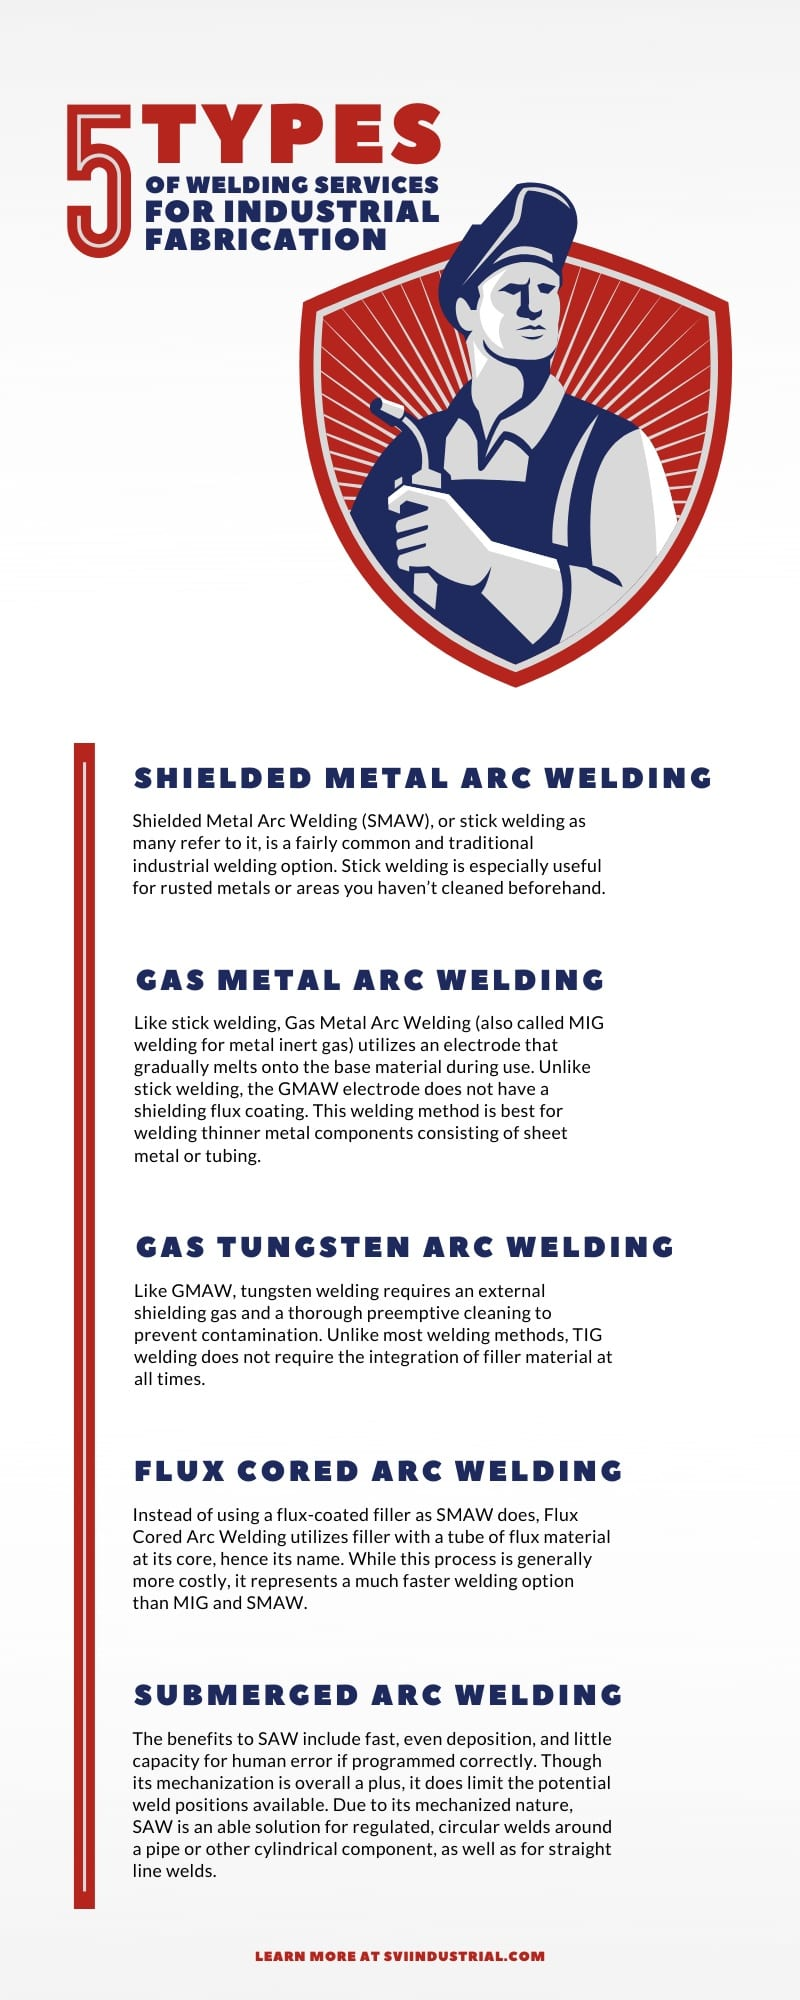 Types of Welding Services for Industrial Fabrication